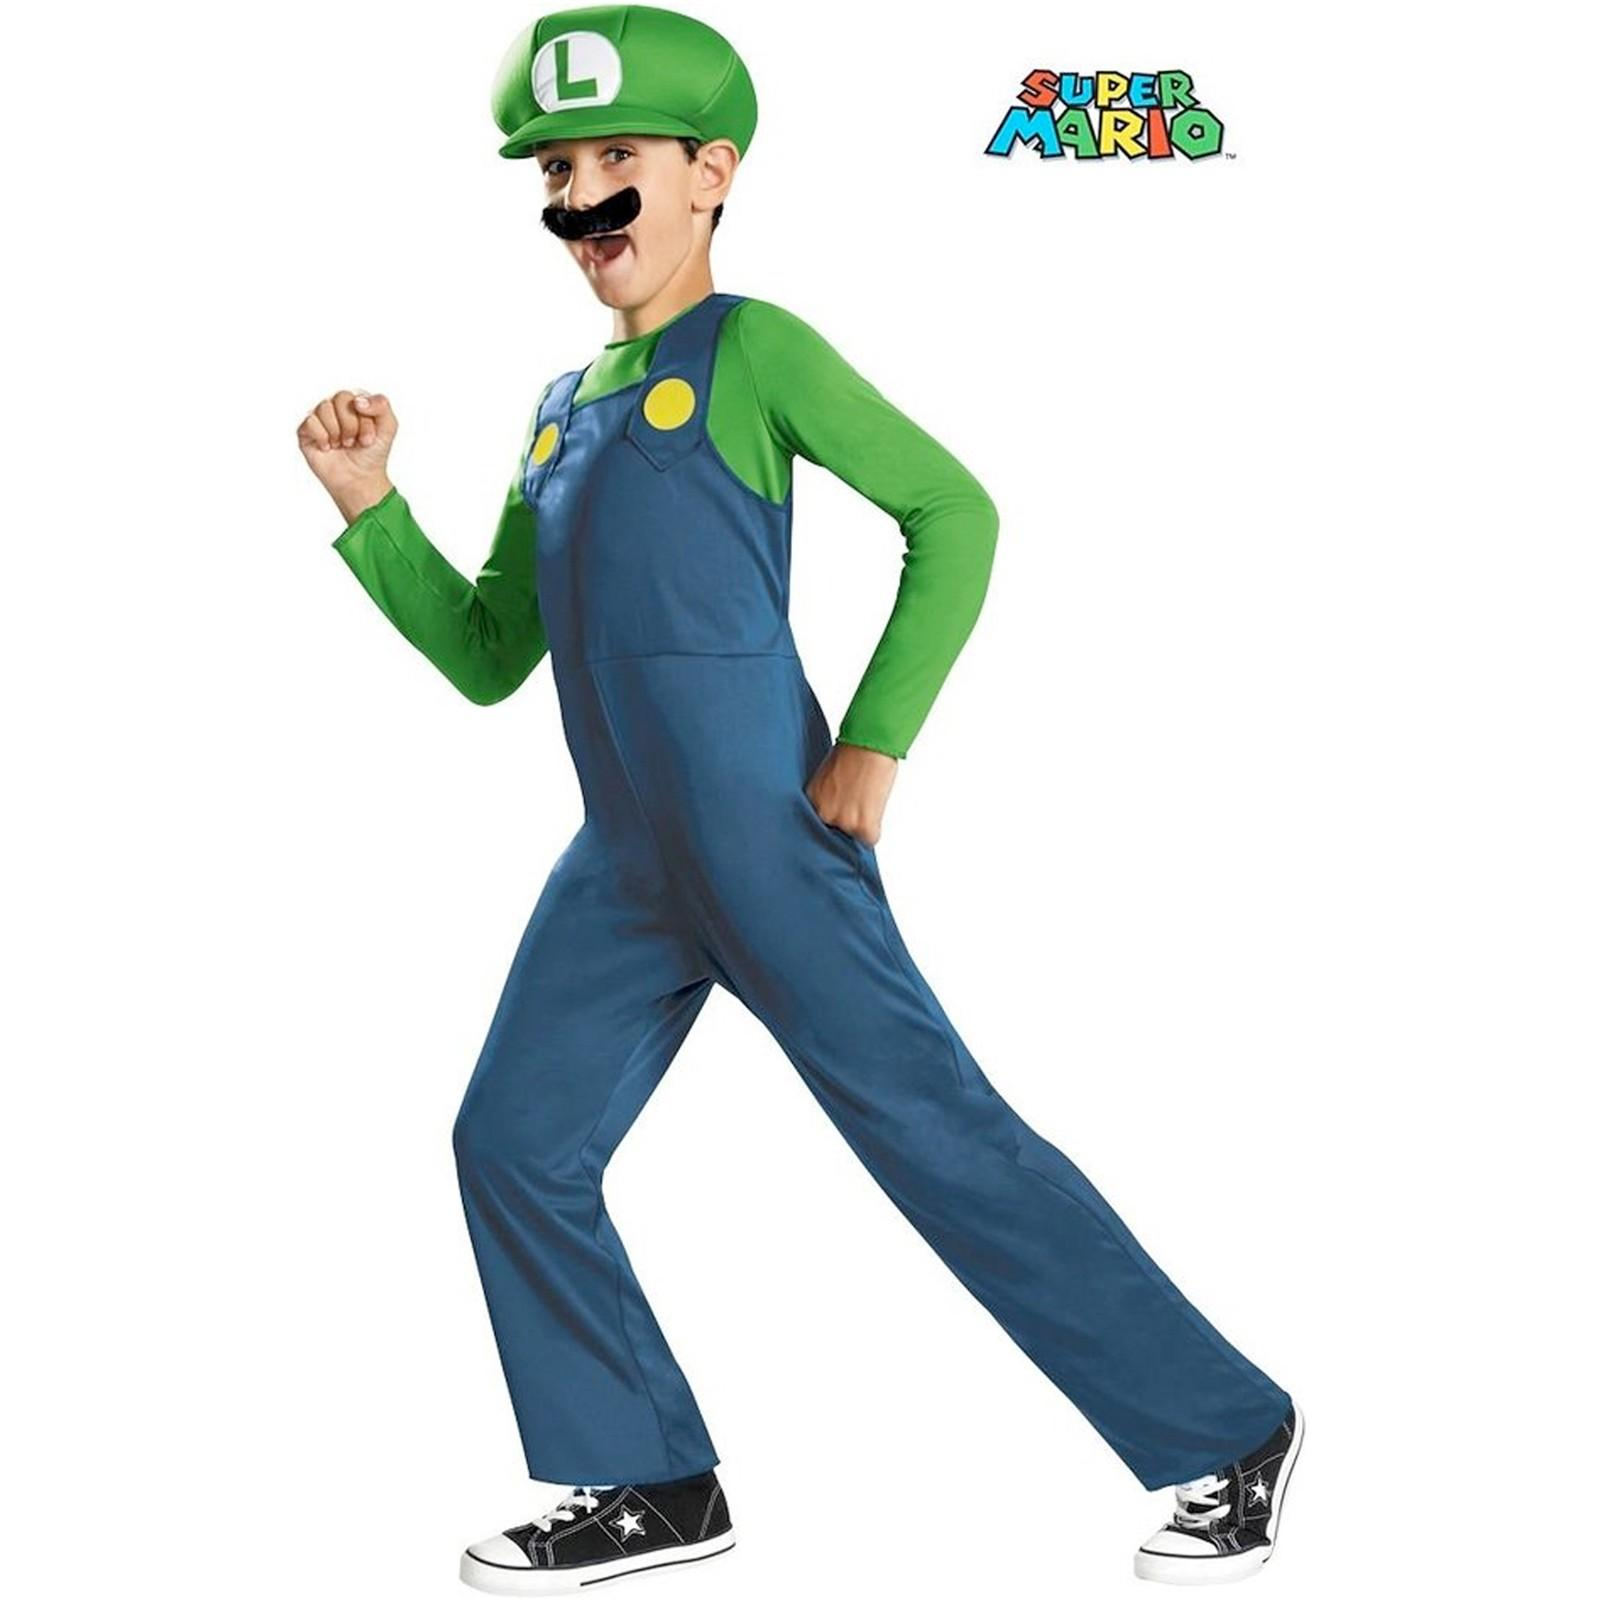 Child Super Mario Bros Luigi Costume  sc 1 st  Walmart : luigi costume accessories  - Germanpascual.Com